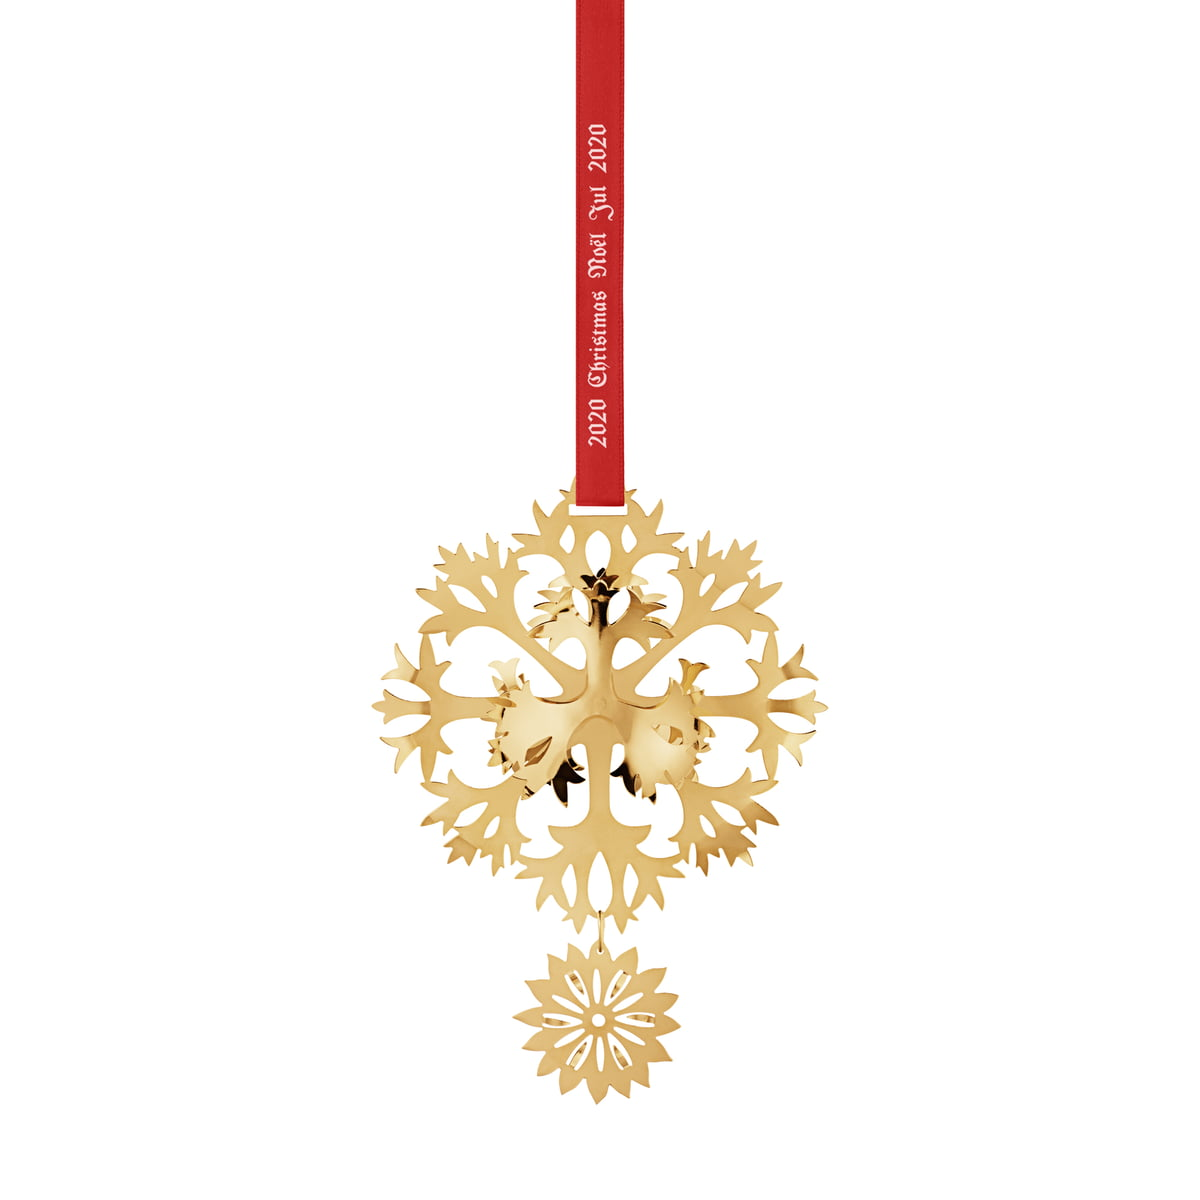 Georg Jensen Christmas Mobile 2020 Gejensen   Christmas mobile eisblume | Connox